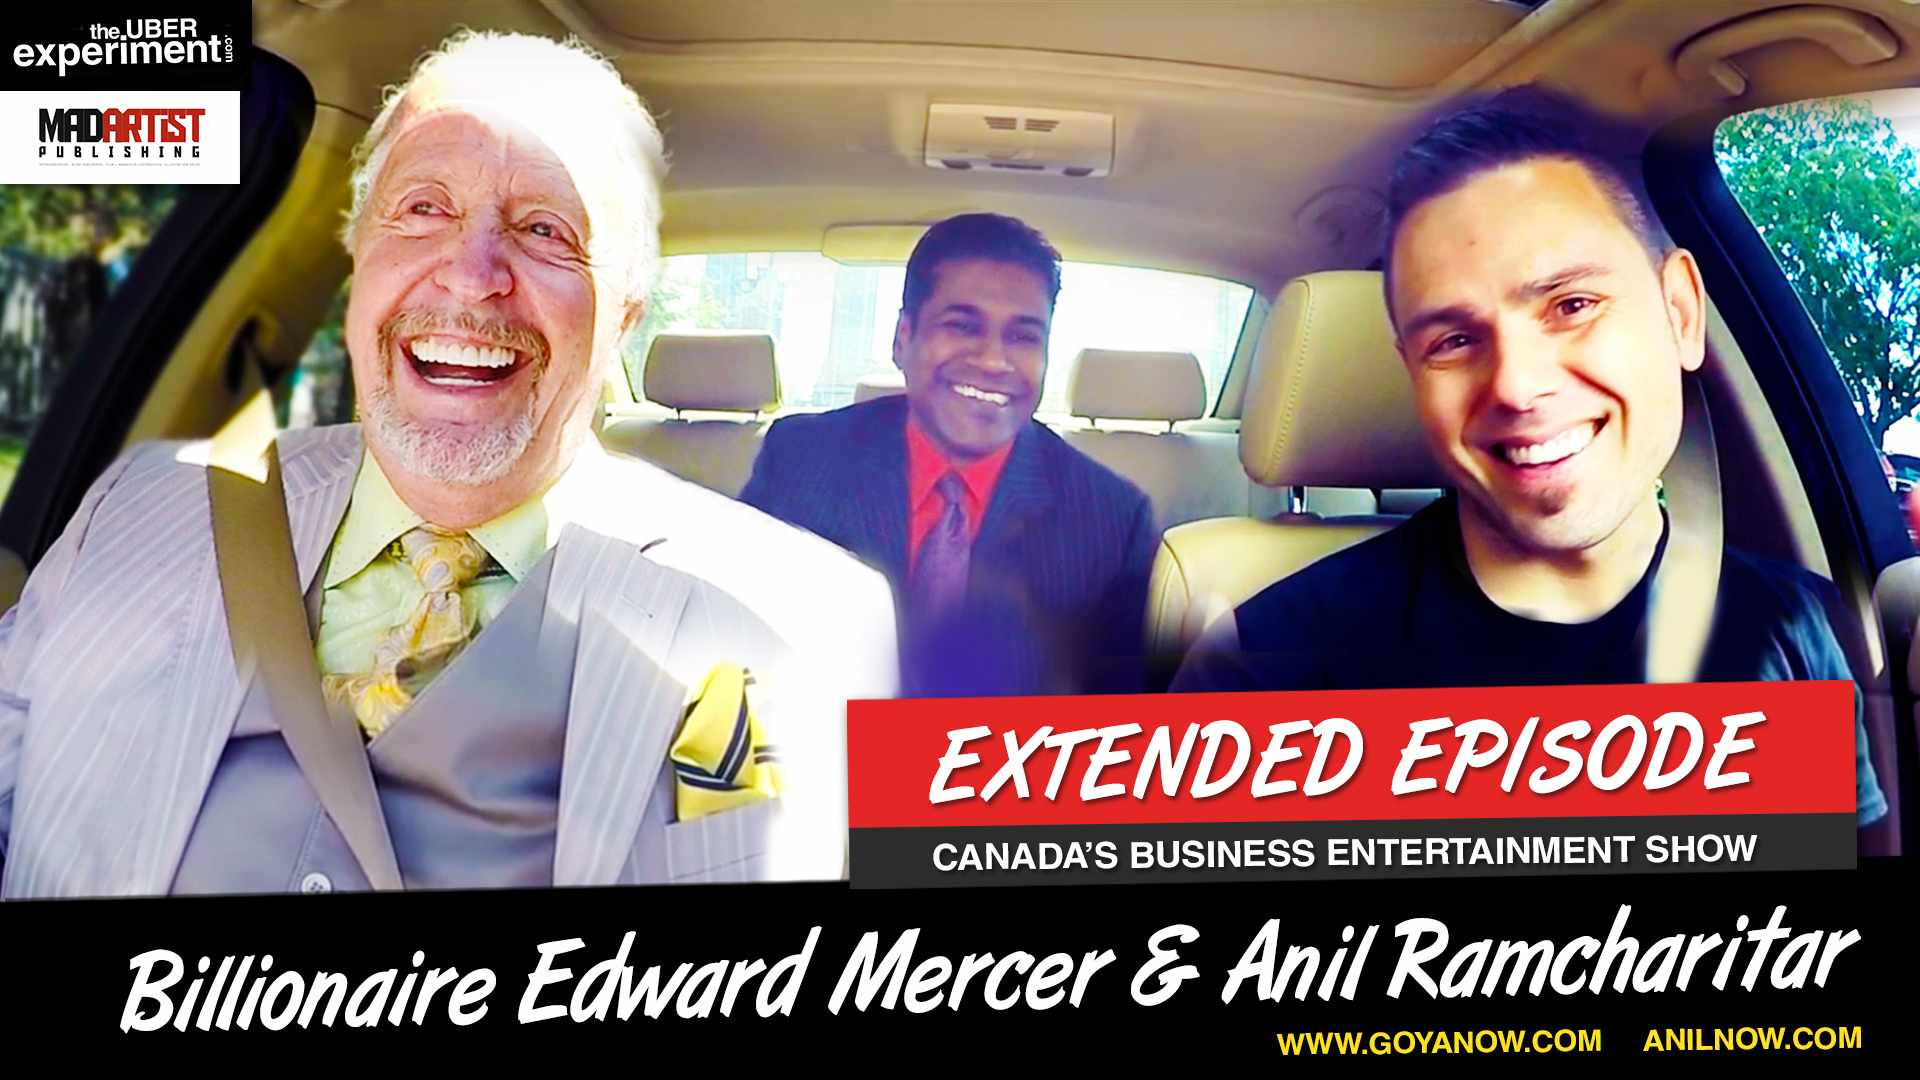 DO U HAVE WHAT IT TAKES TO BE A MILLIONAIRE? Ed Mercer & Anil Ramcharitar ride The UBER Experiment